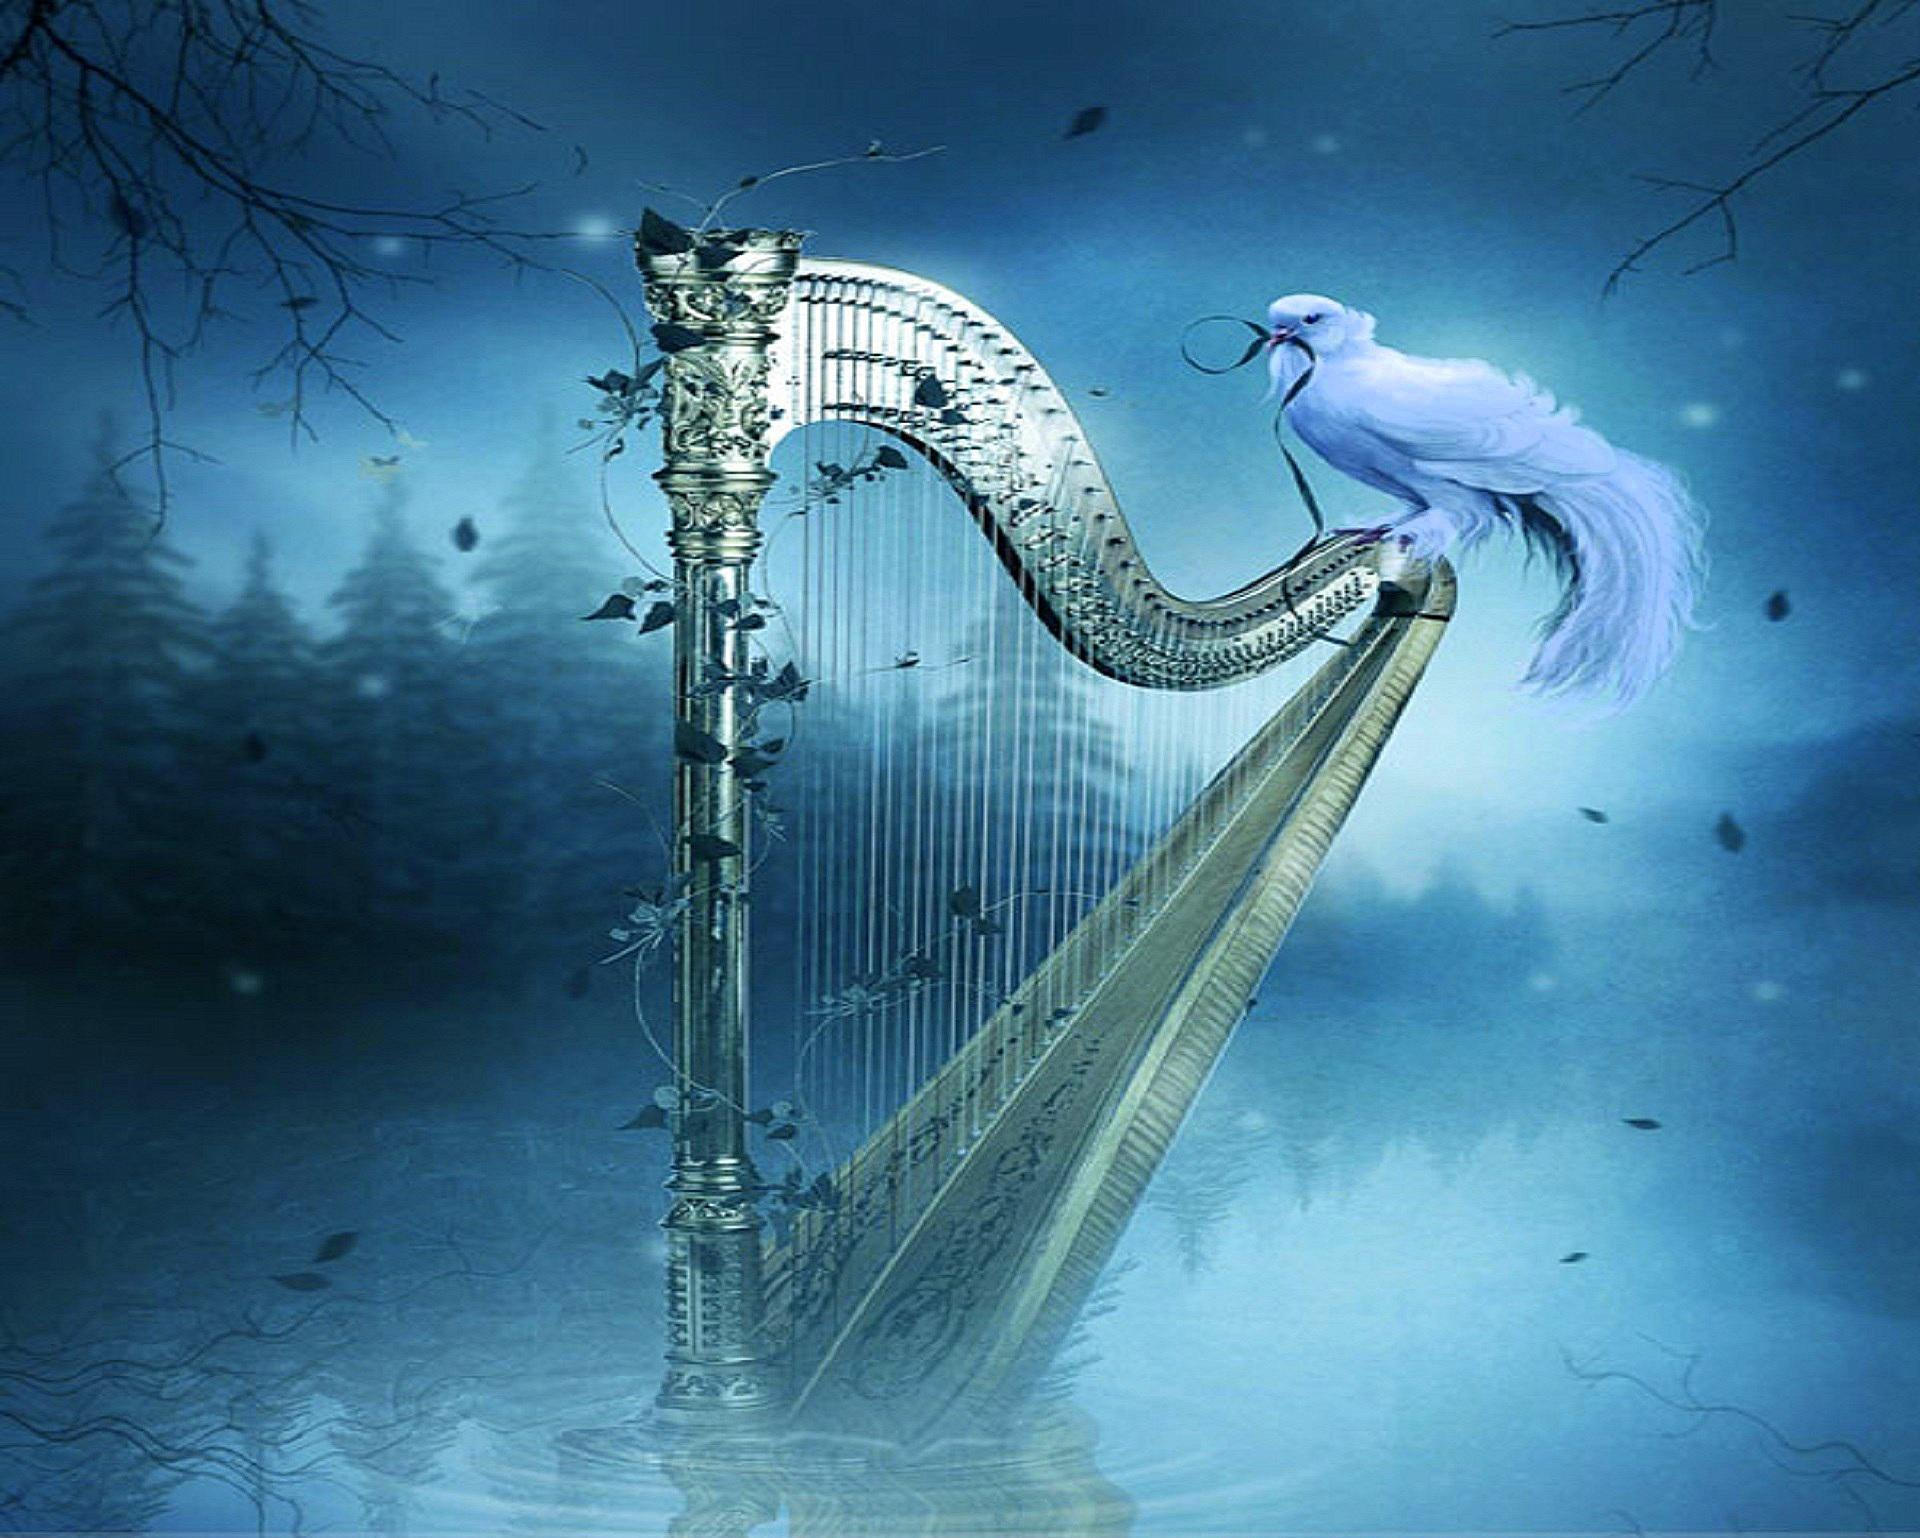 Wind Harp  106642 High Quality And Resolution Wallpapers On